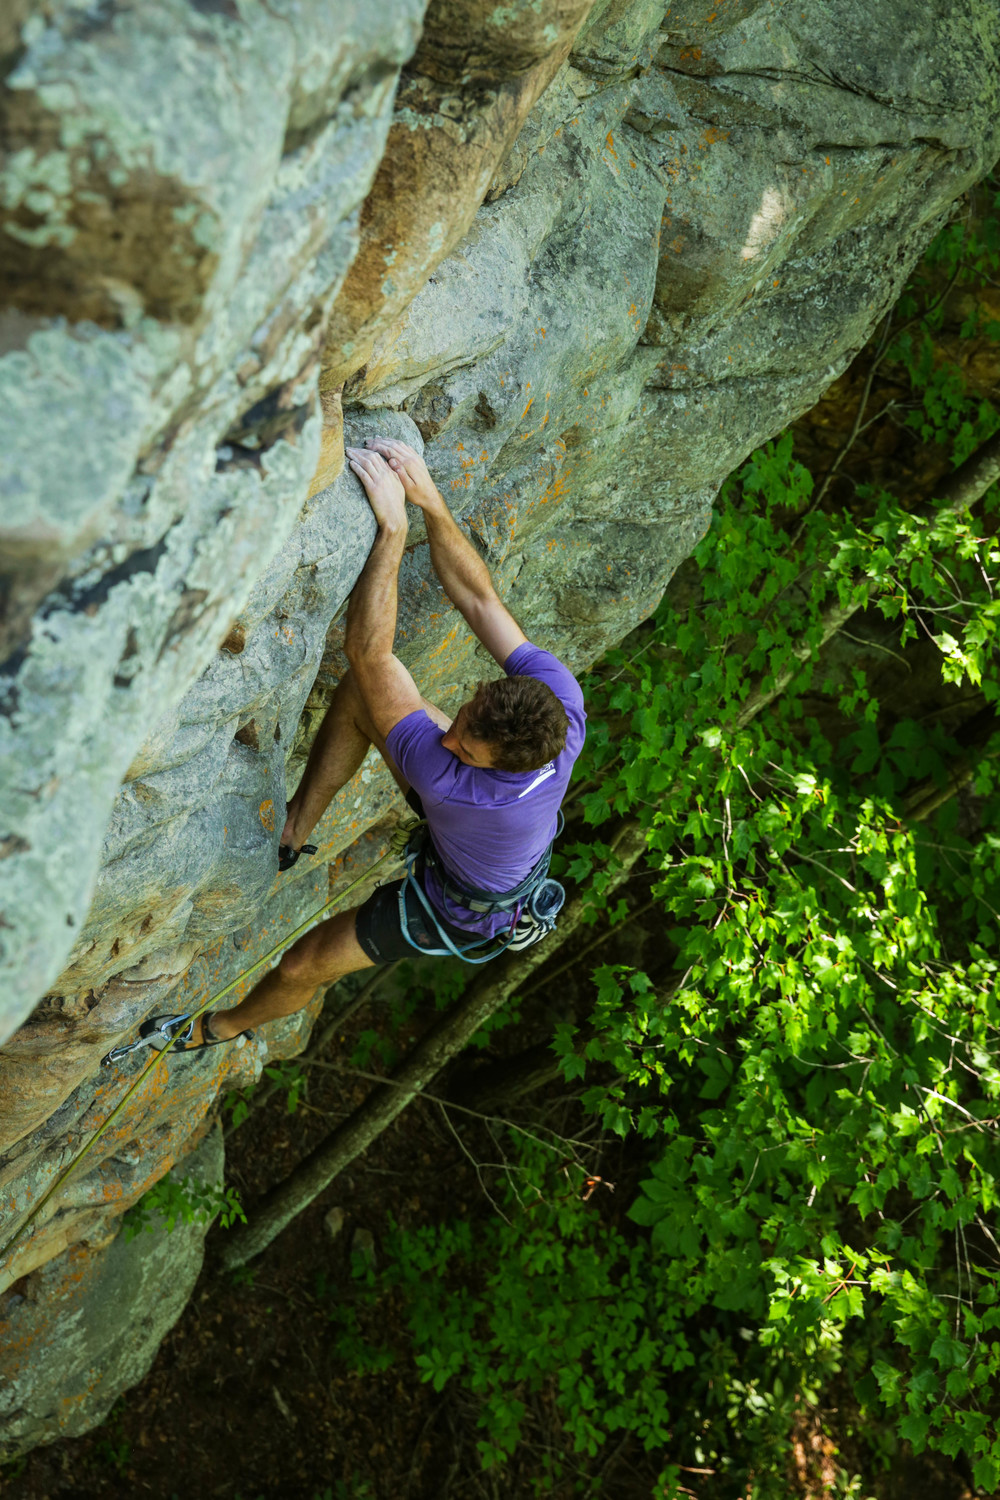 Zachary Lesch-Huie enjoying How Do You Spell Breaks, 5.10a. Photo:  Gerry Seavo James